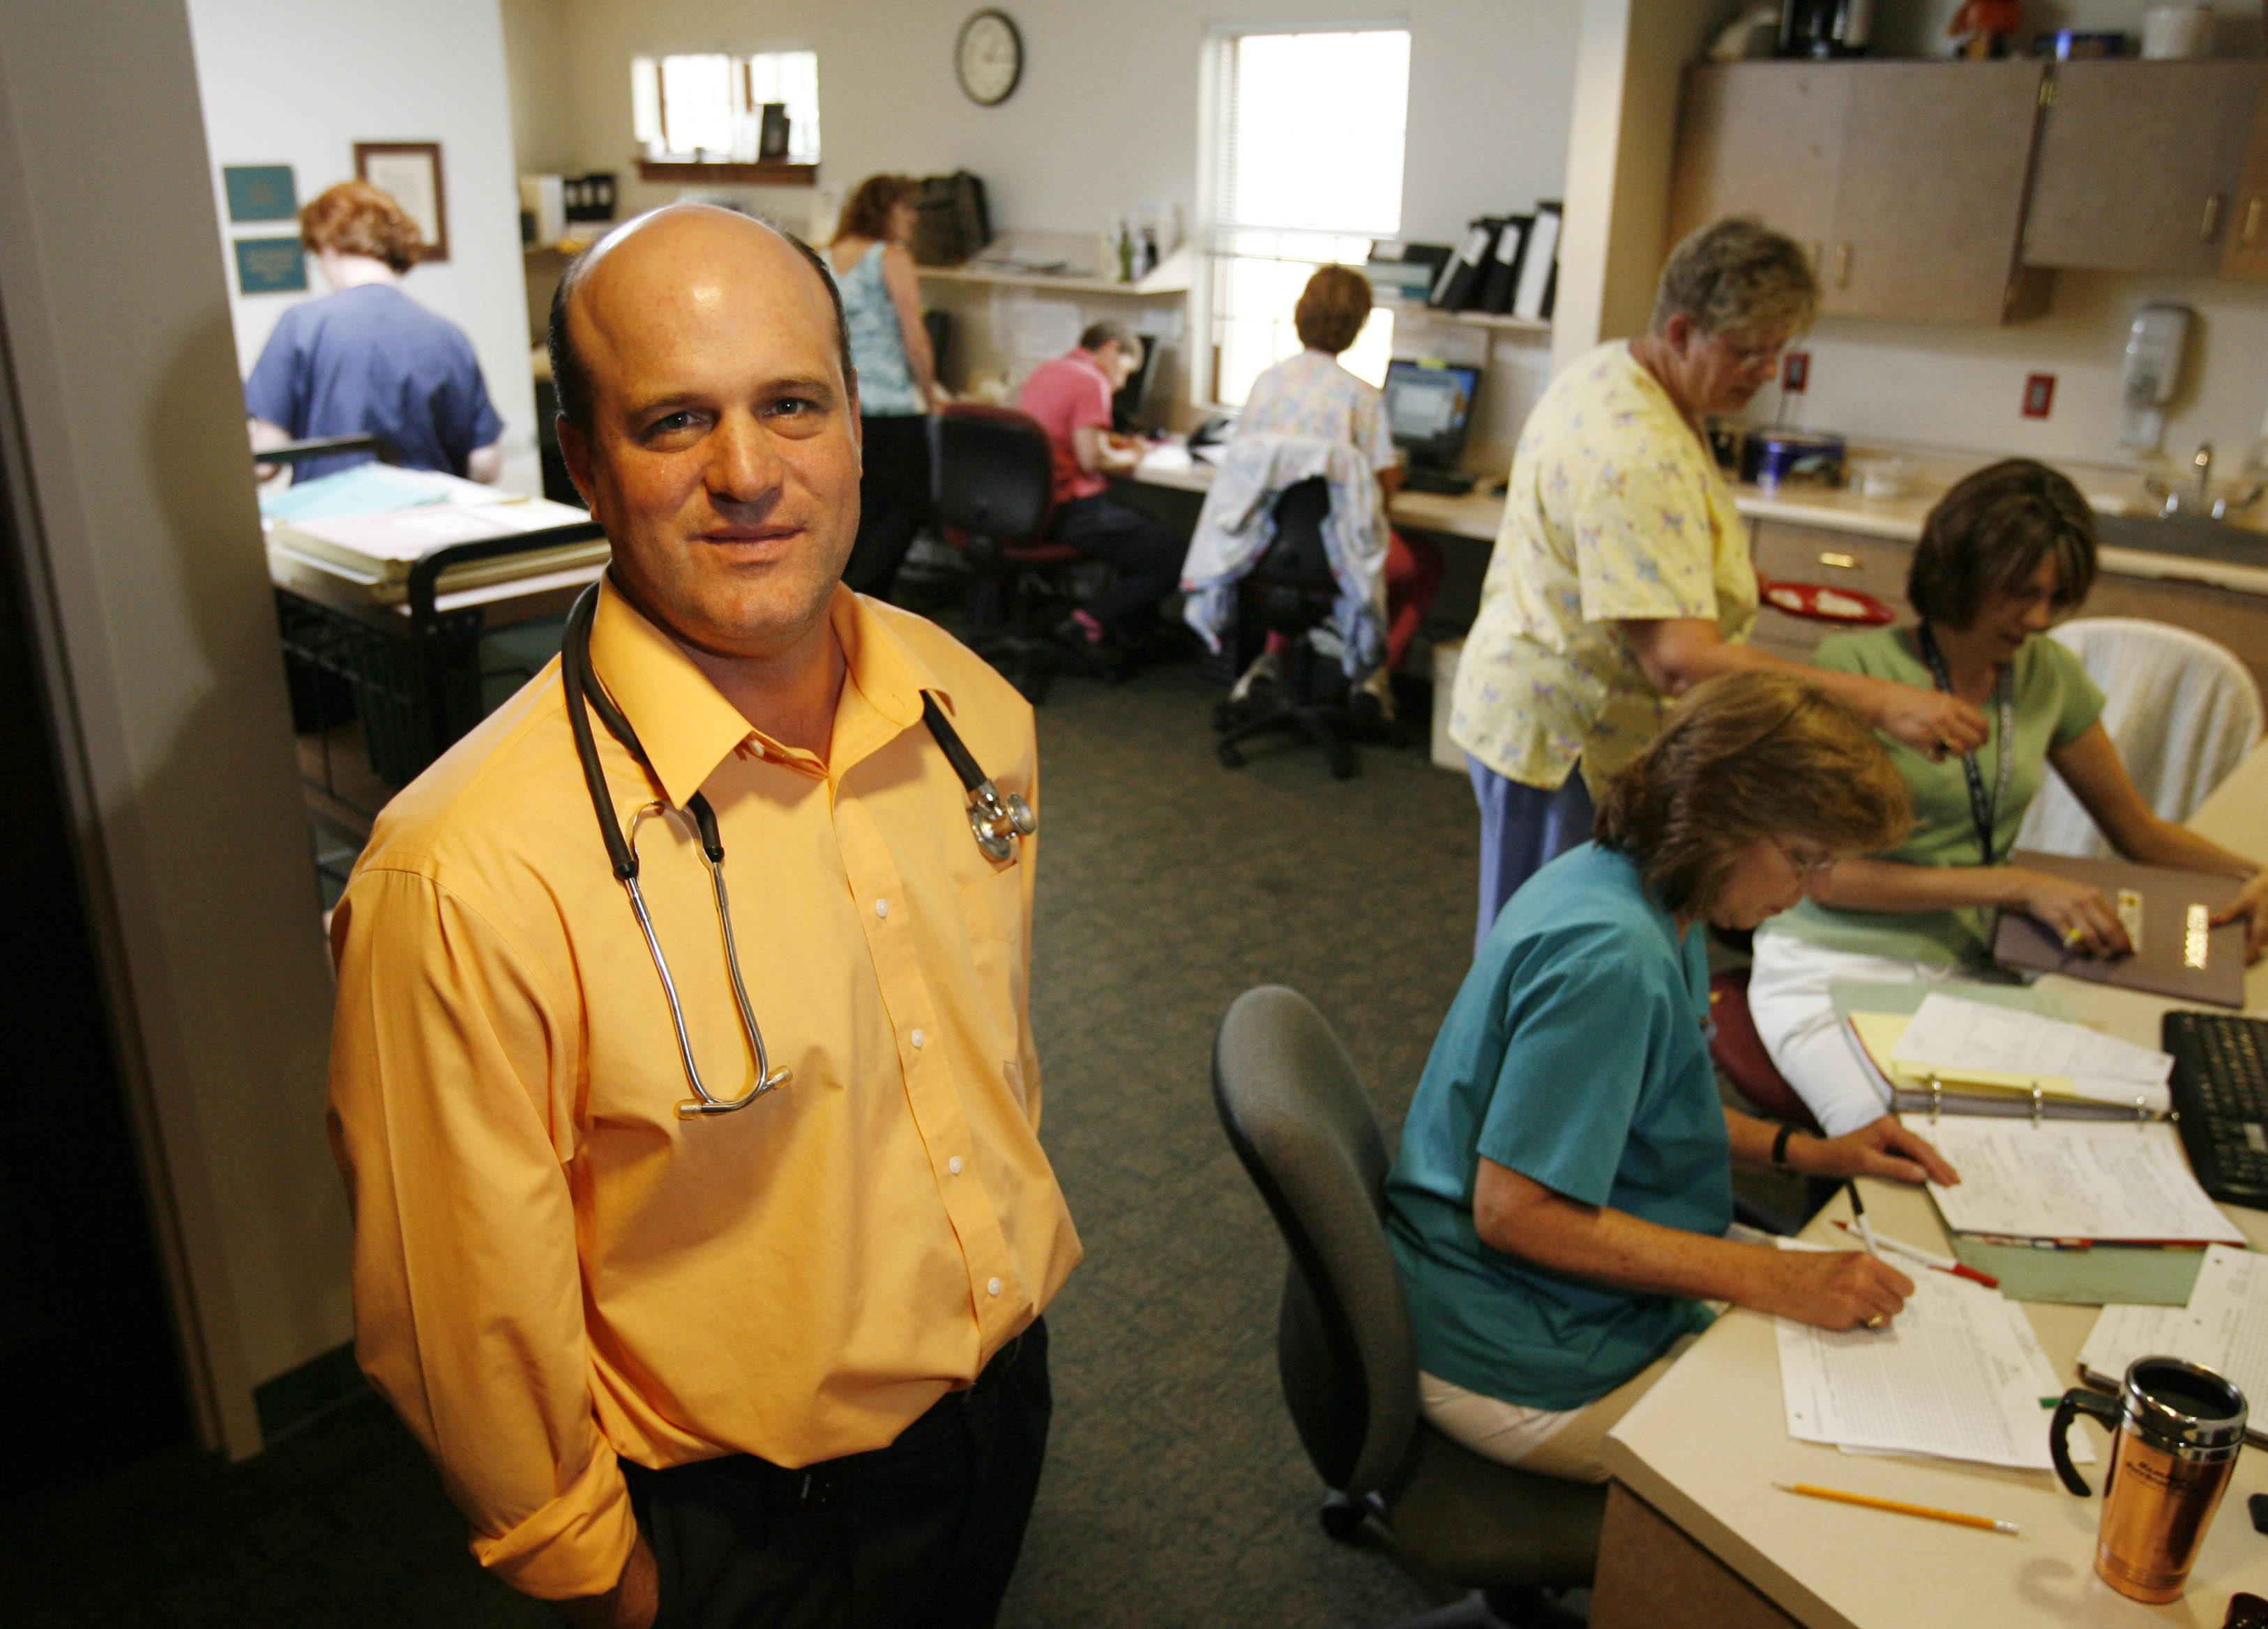 The Center for Hospice & Palliative Care has named Dr. Christopher Kerr its new chief executive officer. (Sharon Cantillon/ Buffalo News file photo)